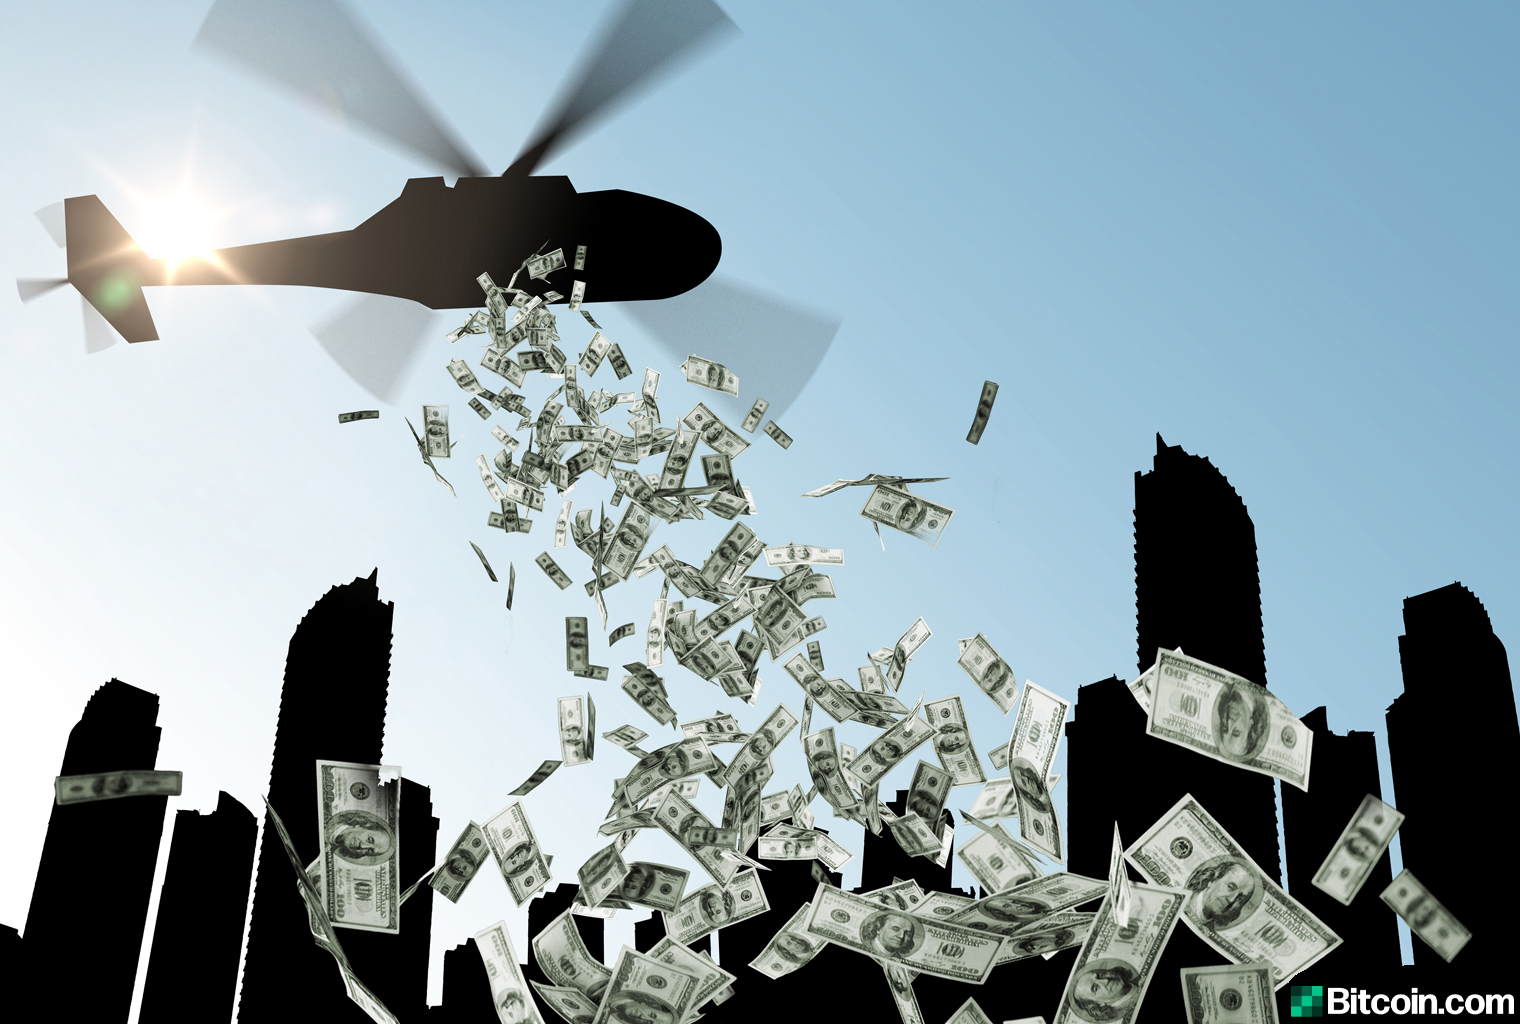 Central Banks in Panic Mode - Extreme Tactics Like Helicopter Money Discussed - Bitcoin News